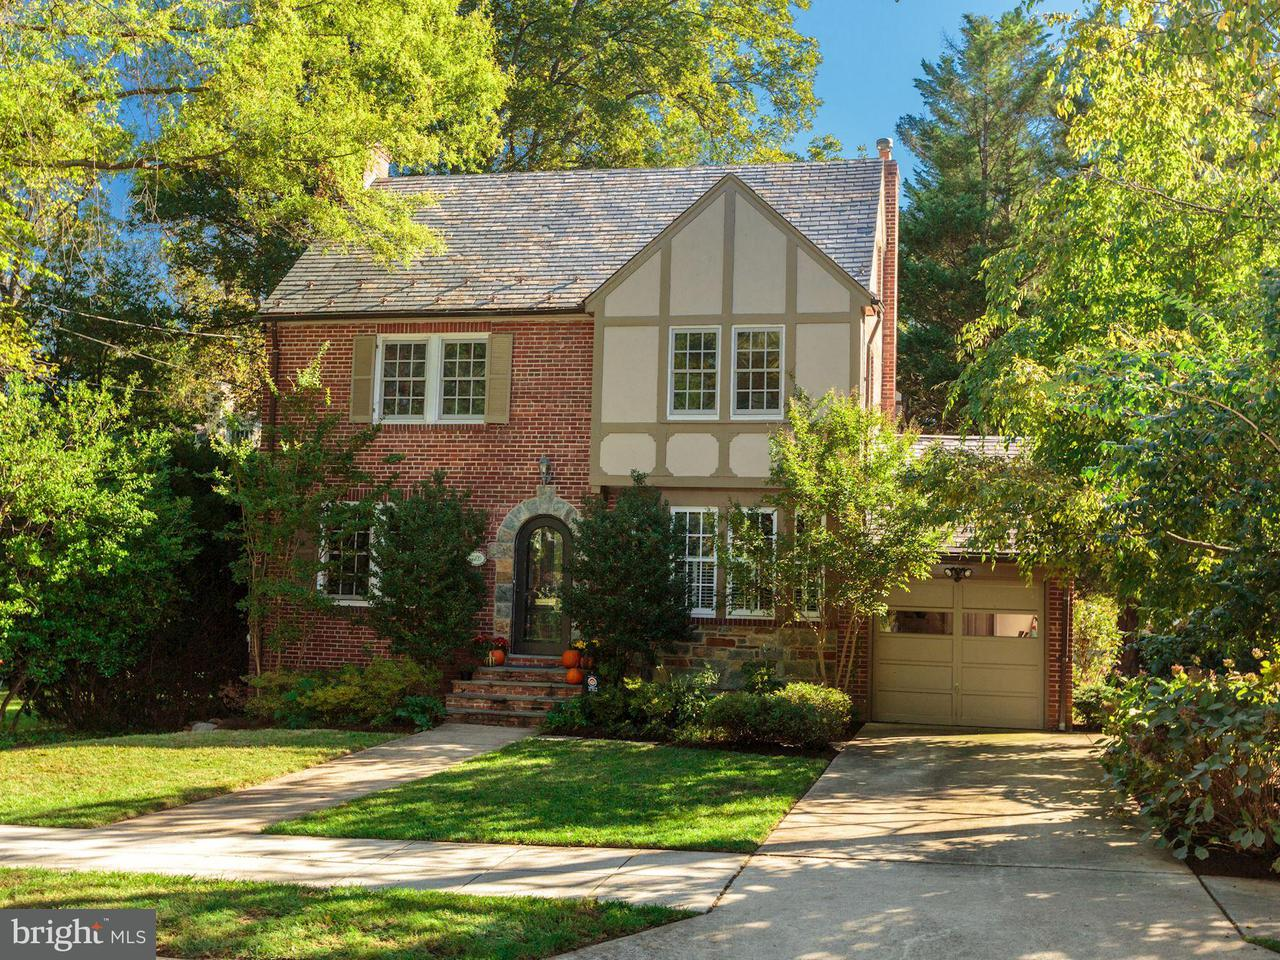 Single Family Home for Sale at 6109 33RD ST NW 6109 33RD ST NW Washington, District Of Columbia 20015 United States